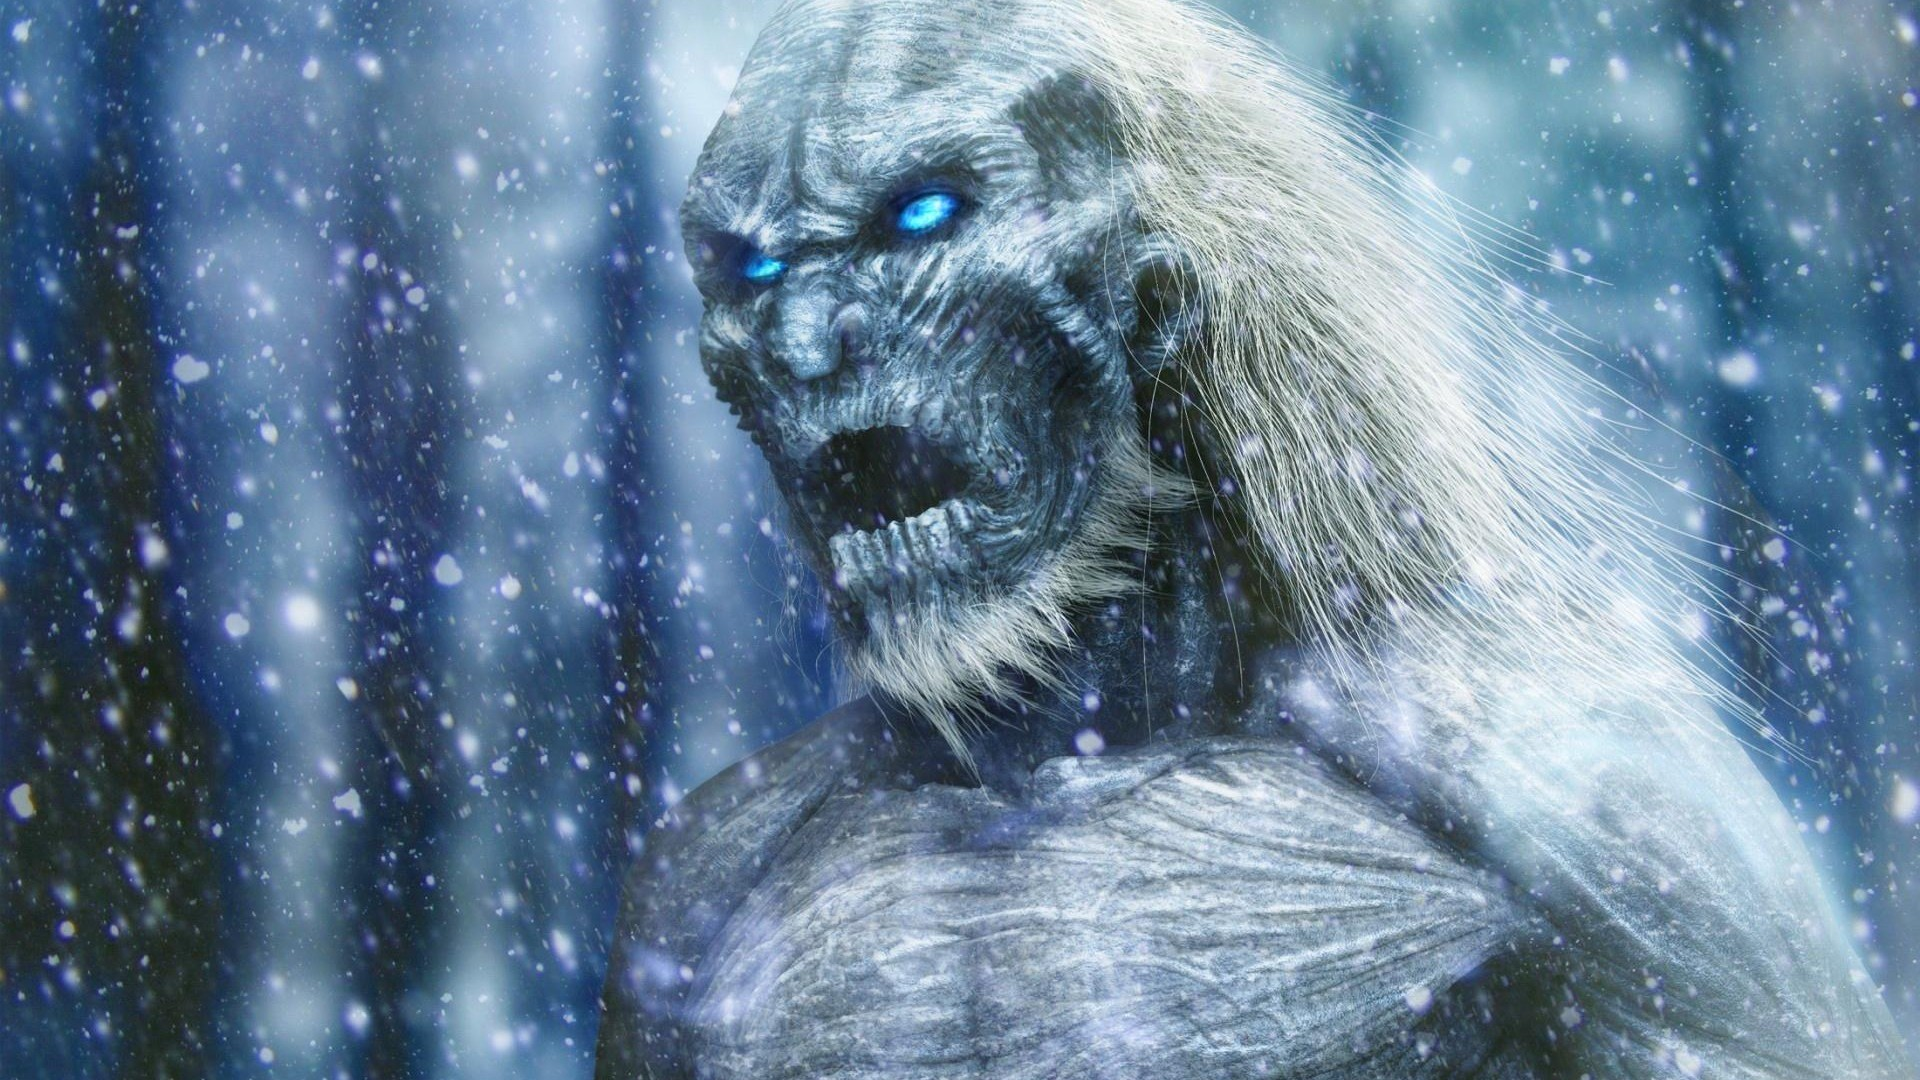 1920x1080 Game of Thrones White Walkers Wallpaper HD Wallpaper  ...